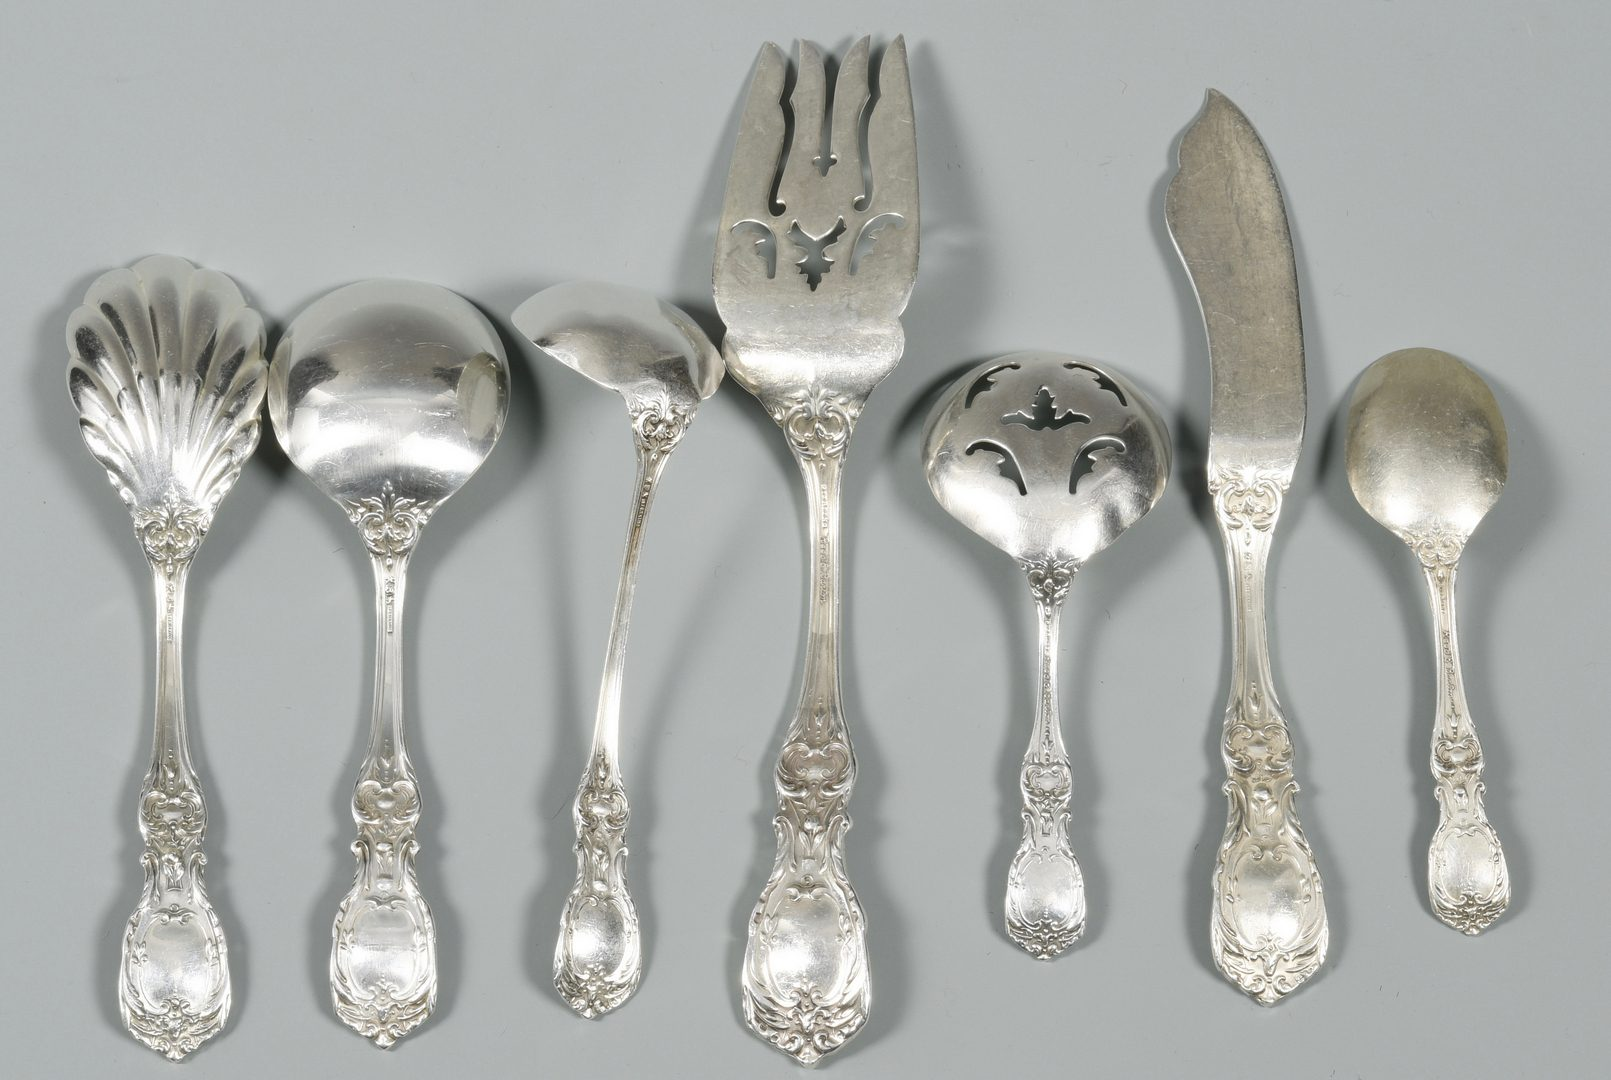 Lot 53: Reed and Barton Francis I Sterling, 106 pcs